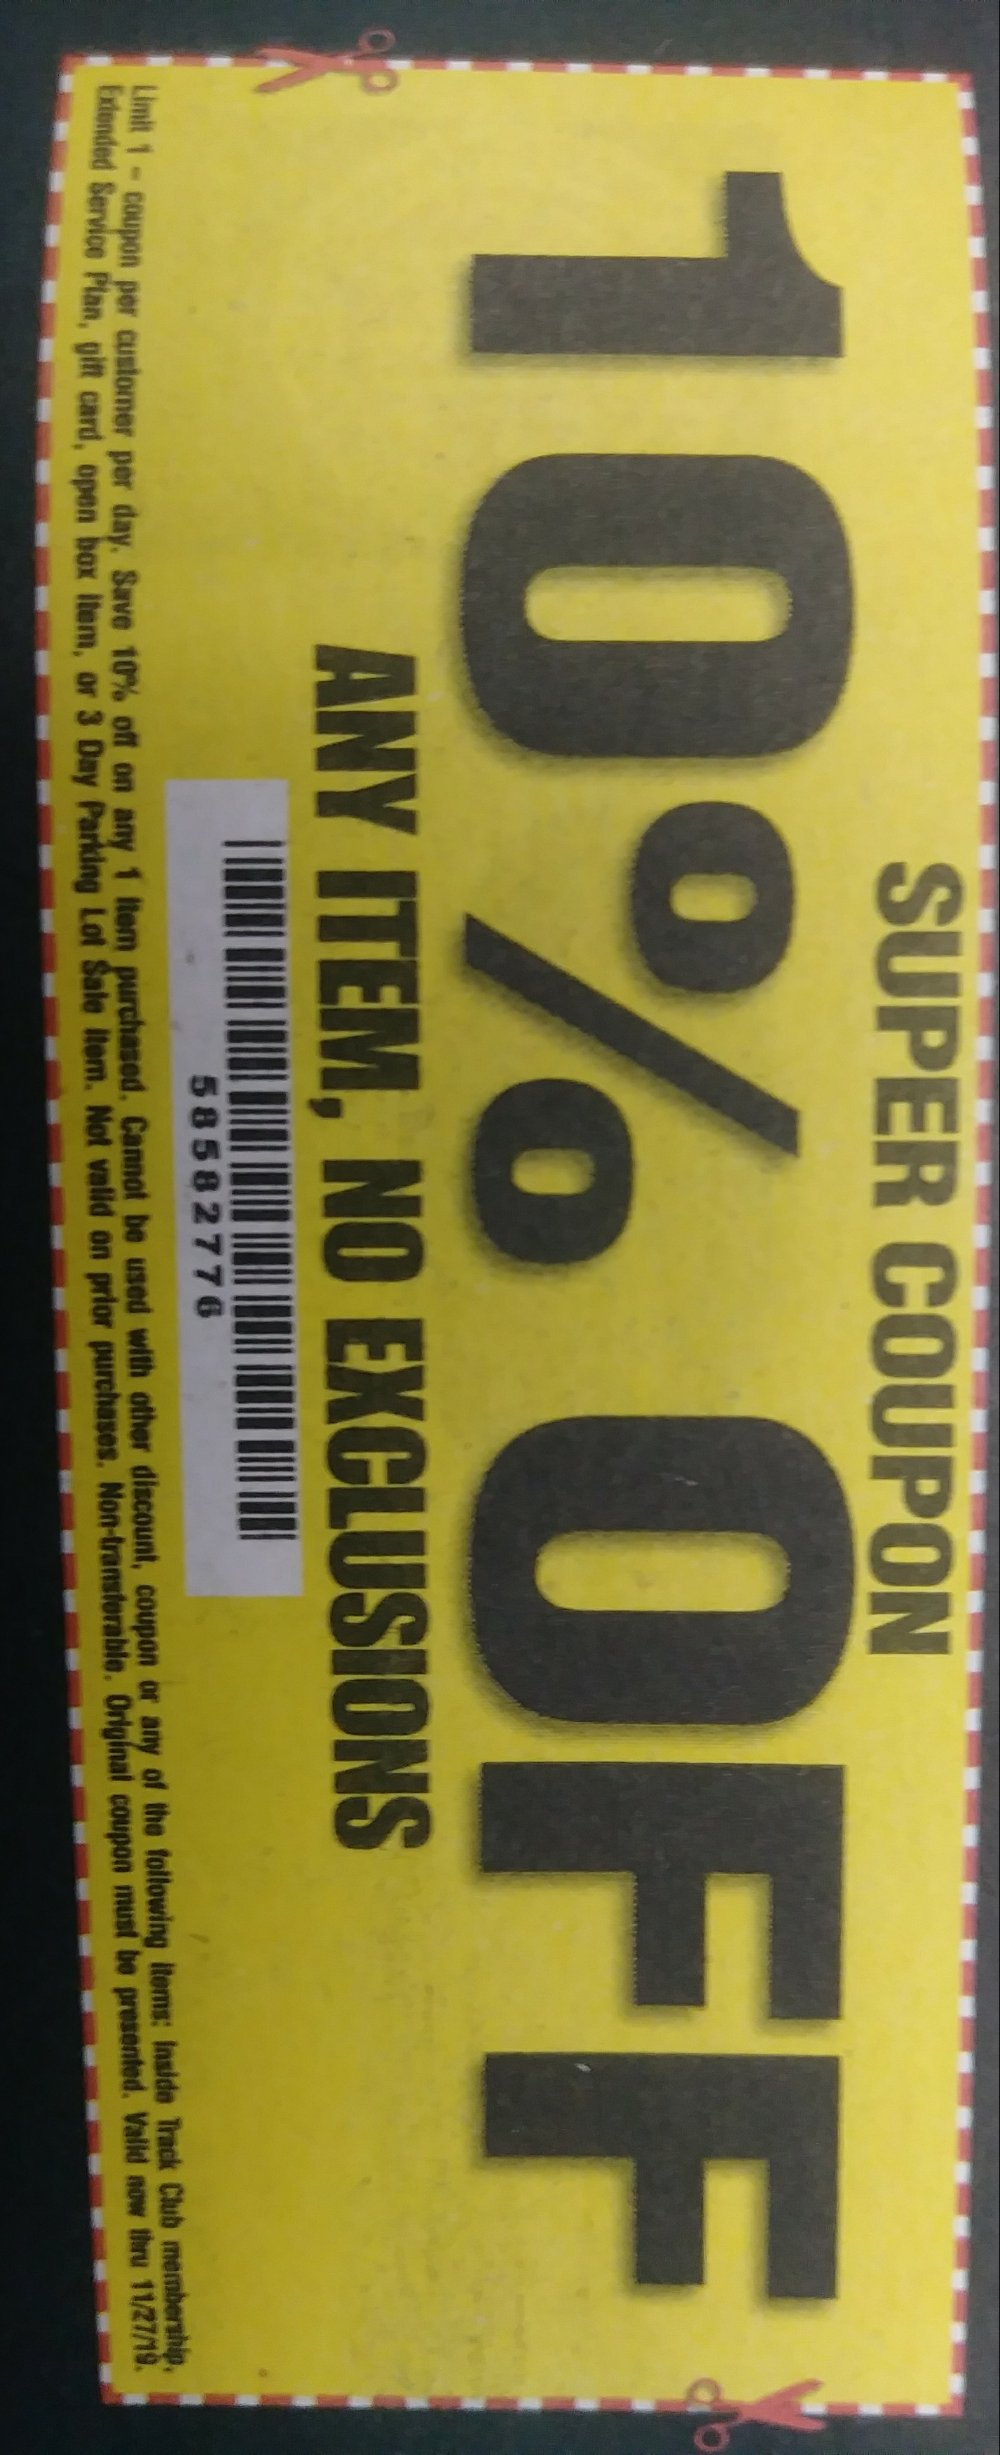 Harbor Freight Coupon, HF Coupons - 10% off any item no exclusions